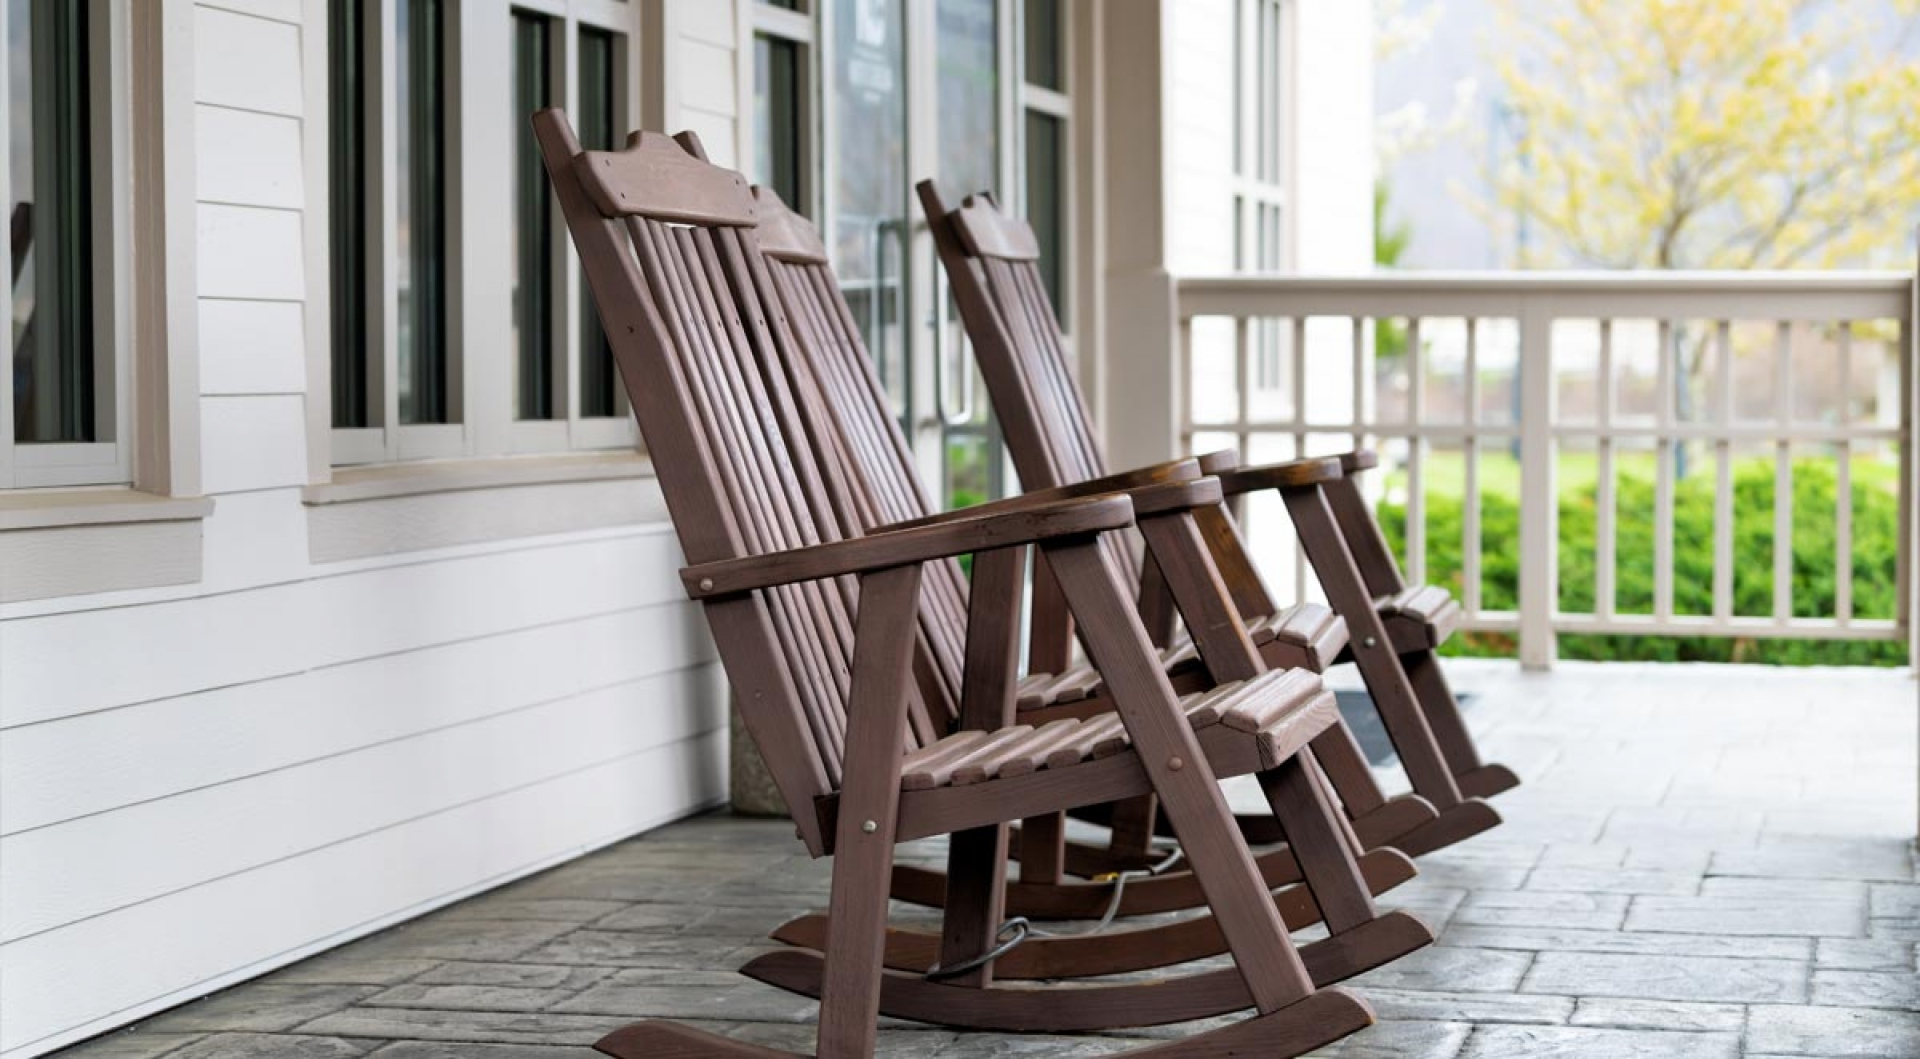 12 Steps for Pressure Washing Porches